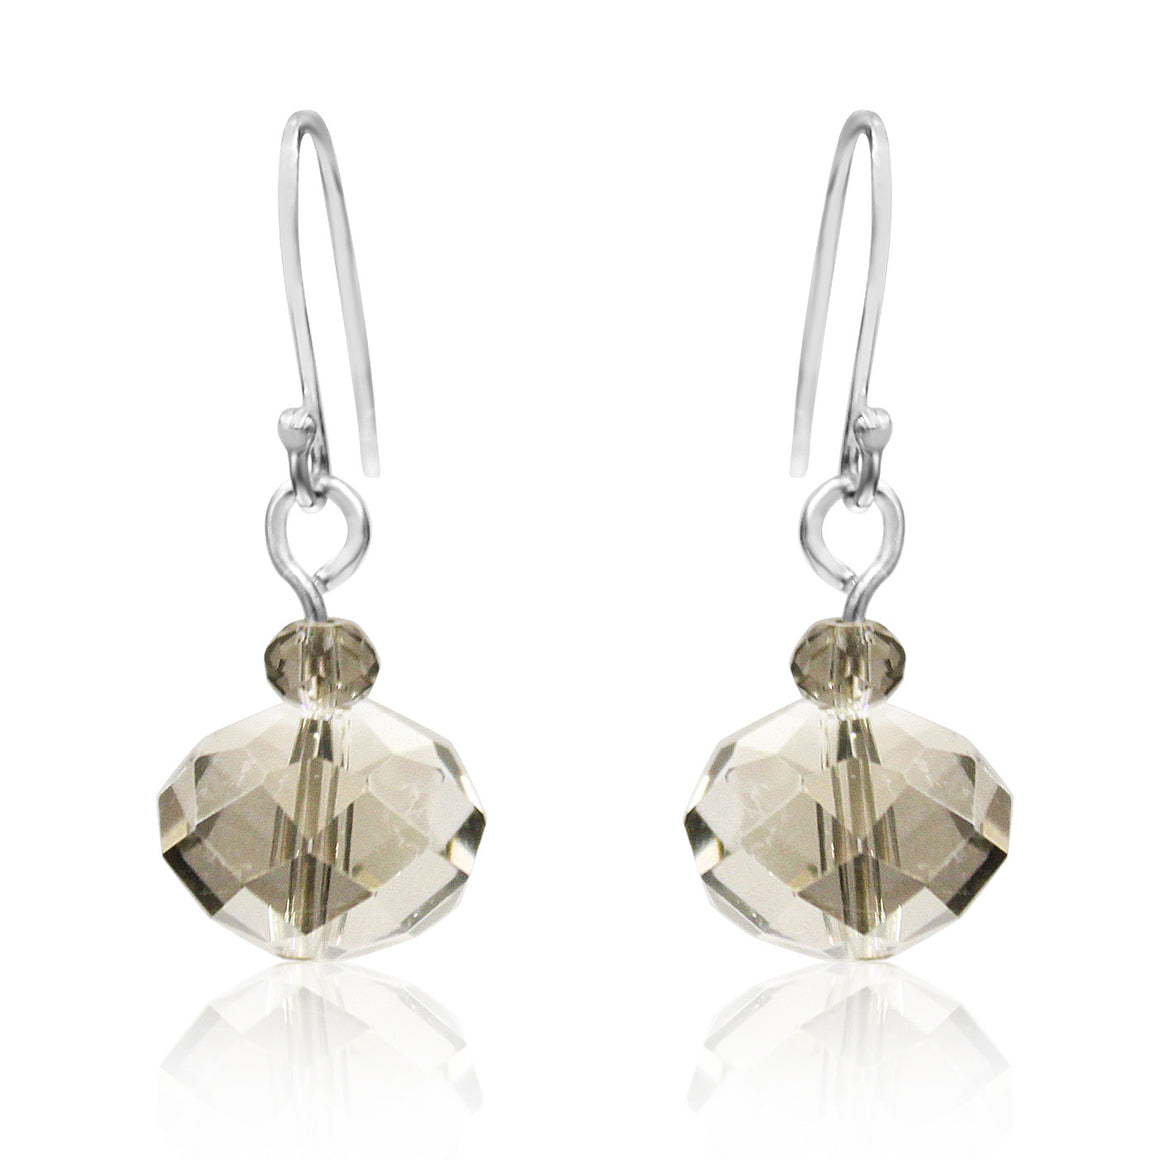 Platinum Crystal Earrings - matching the platinum 10 Way Necklace